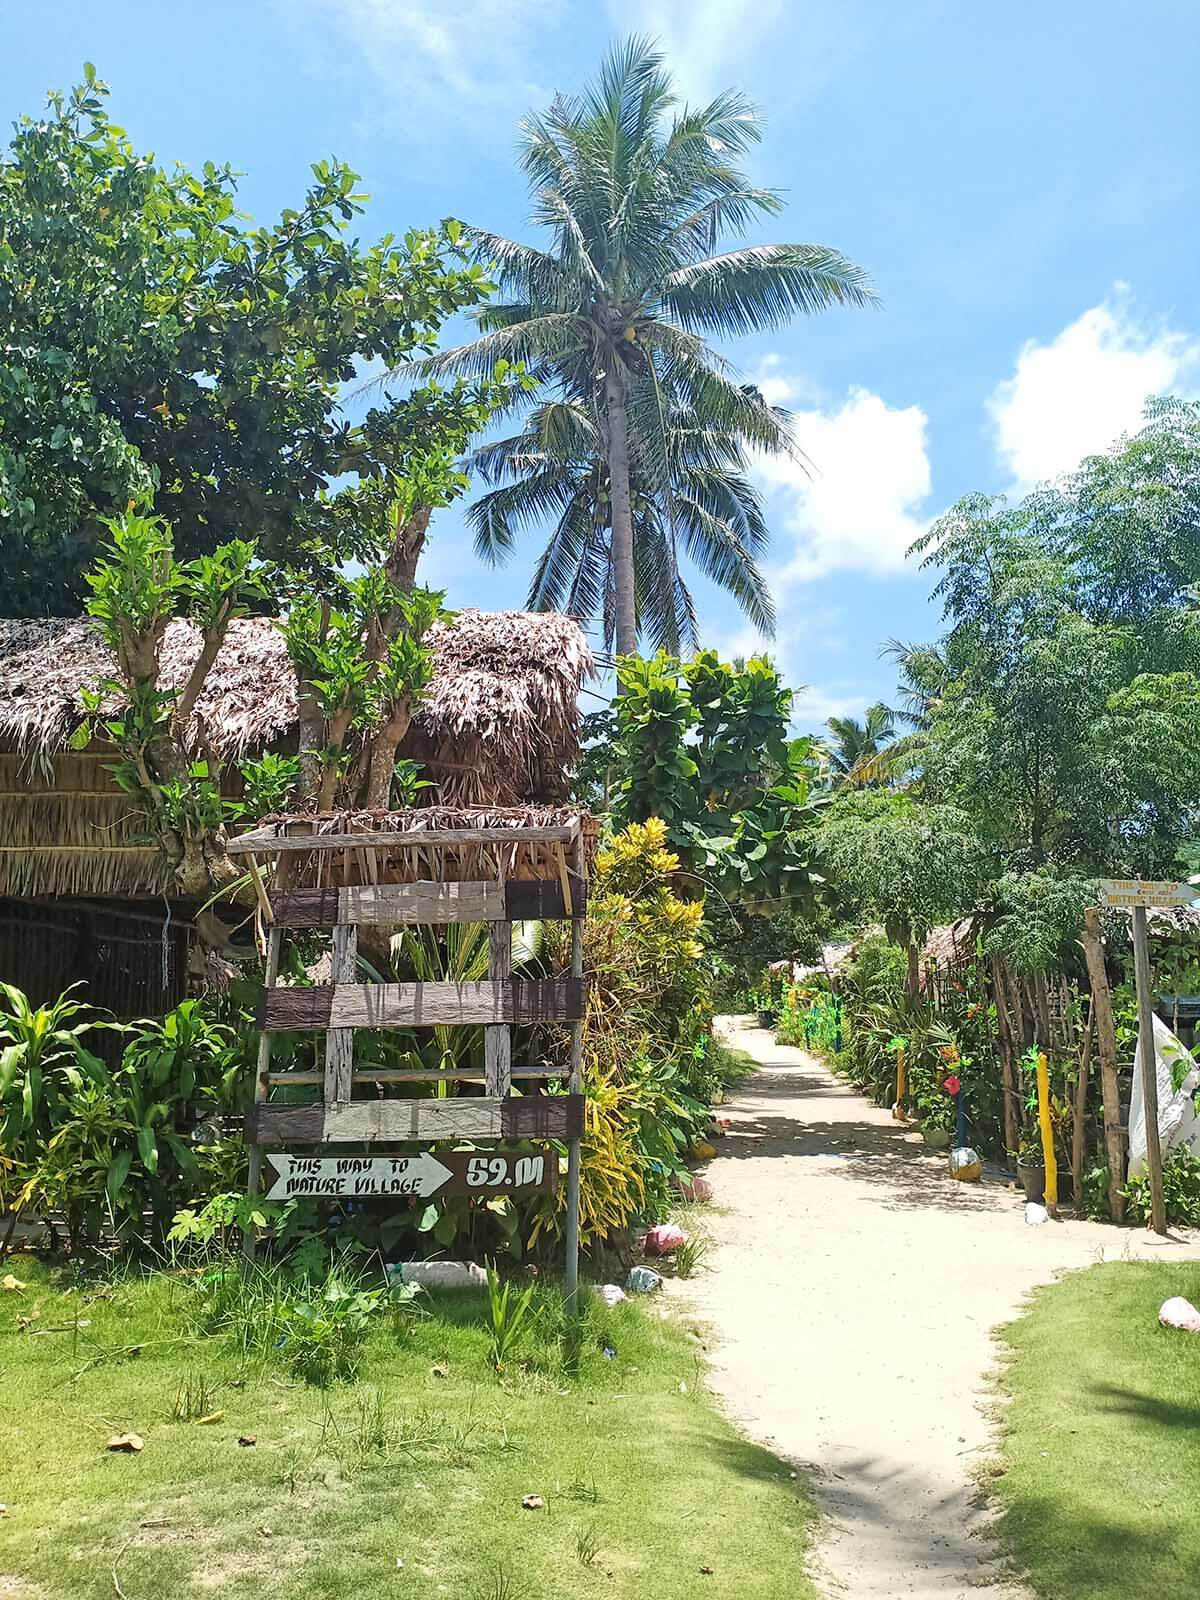 Santa Ana Cagayan Travel Guide - Palaui Island - Nature Village